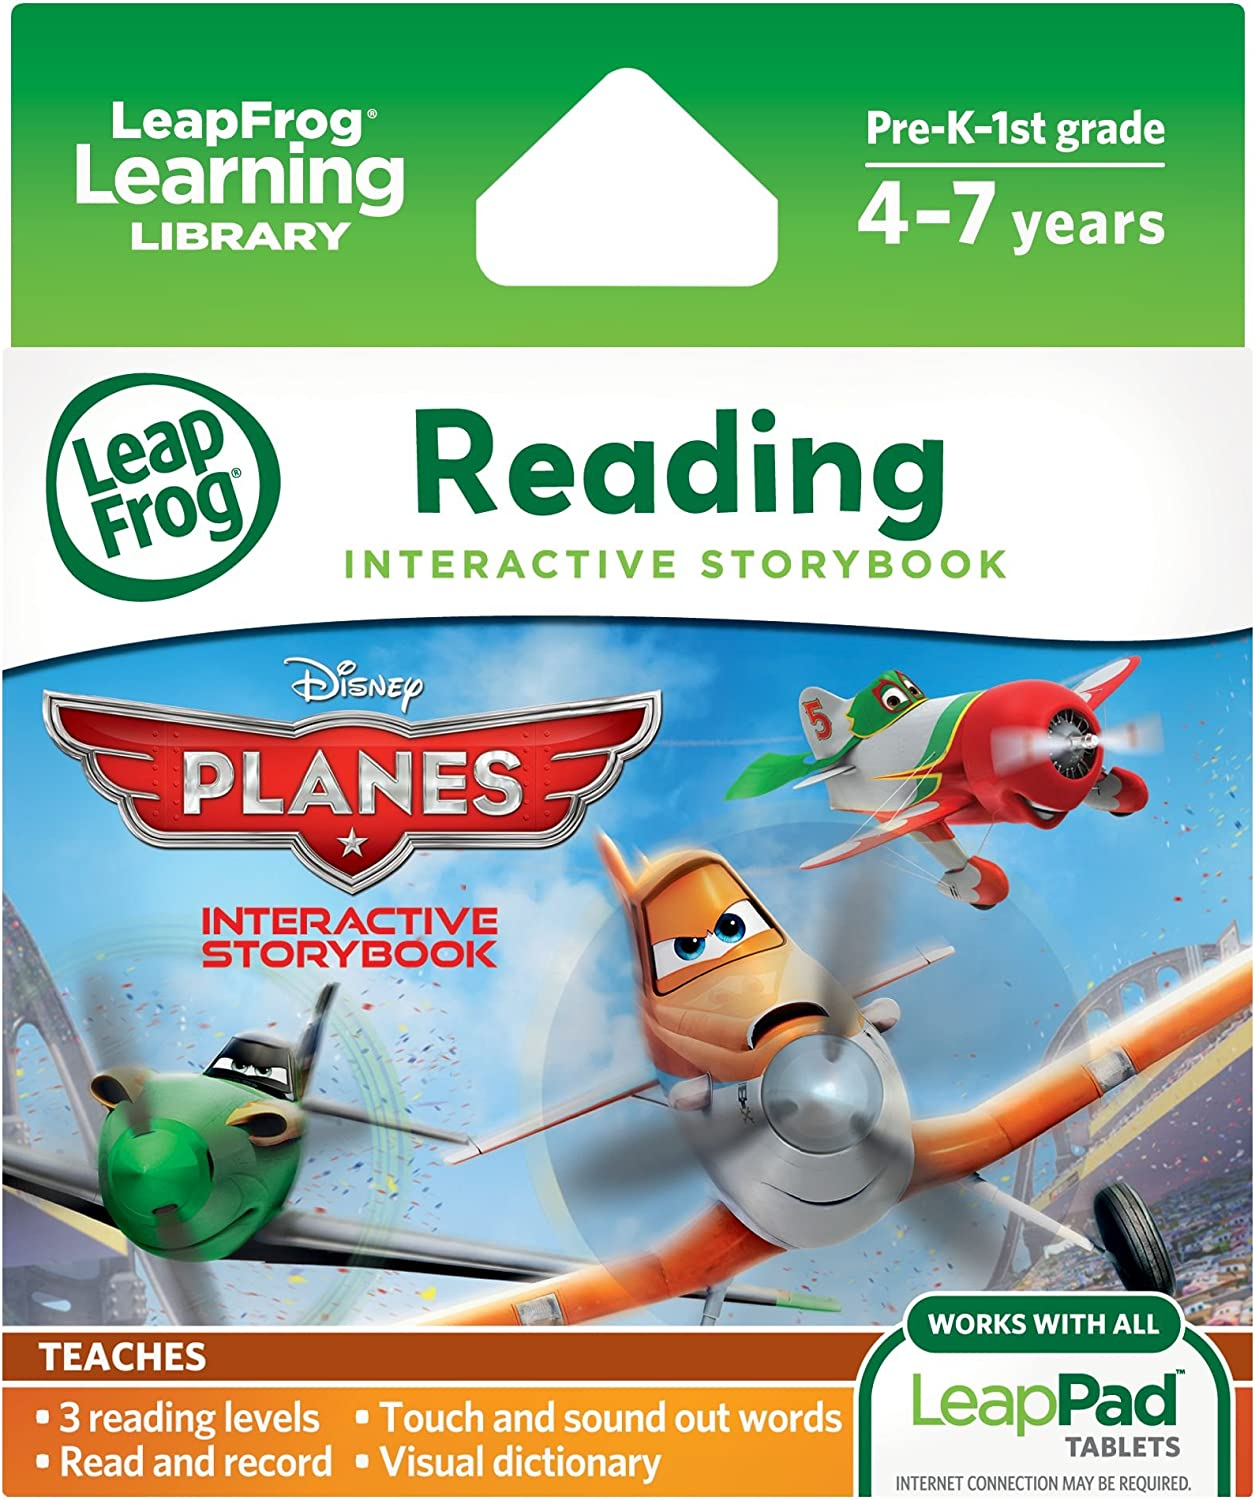 LeapFrog Disney: Planes Interactive for LeapPad Tablet Denver Mall Storybook Cheap super special price